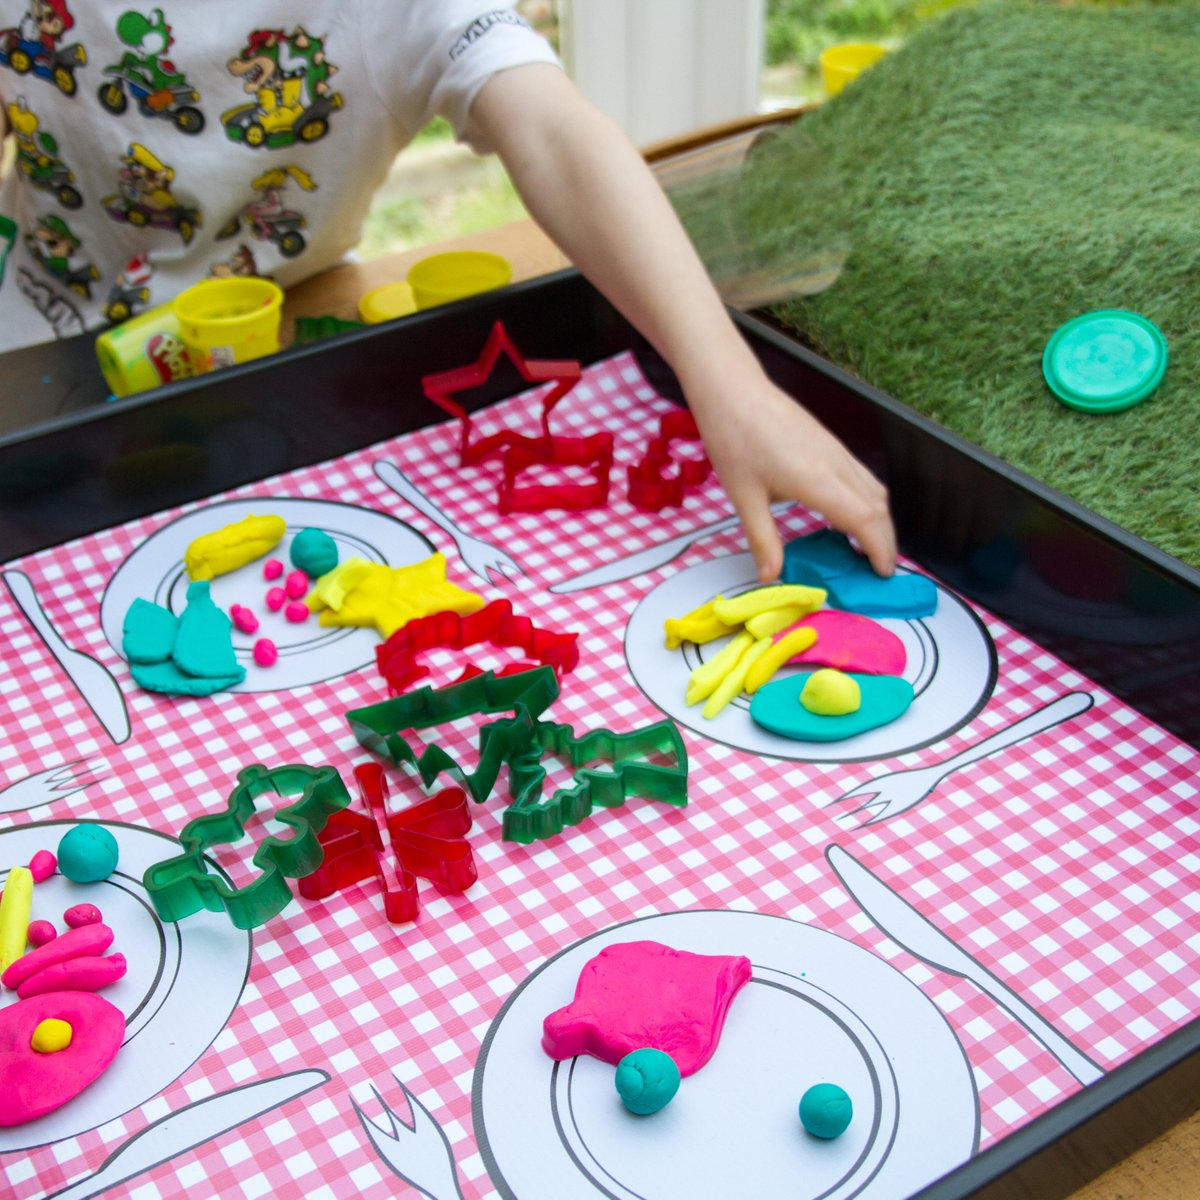 This picnic-style Tiger Play Tray mat was the winning entry in our recent competition. We put it through its paces with play-doh, cookie cutters and Dr Seuss's epic Green Eggs and Ham!  https://t.co/kZKYZch7sq  #drseuss #eyfs #playdoh #tufftray #creativeplay #greeneggsandham https://t.co/OvkwfNSCg4